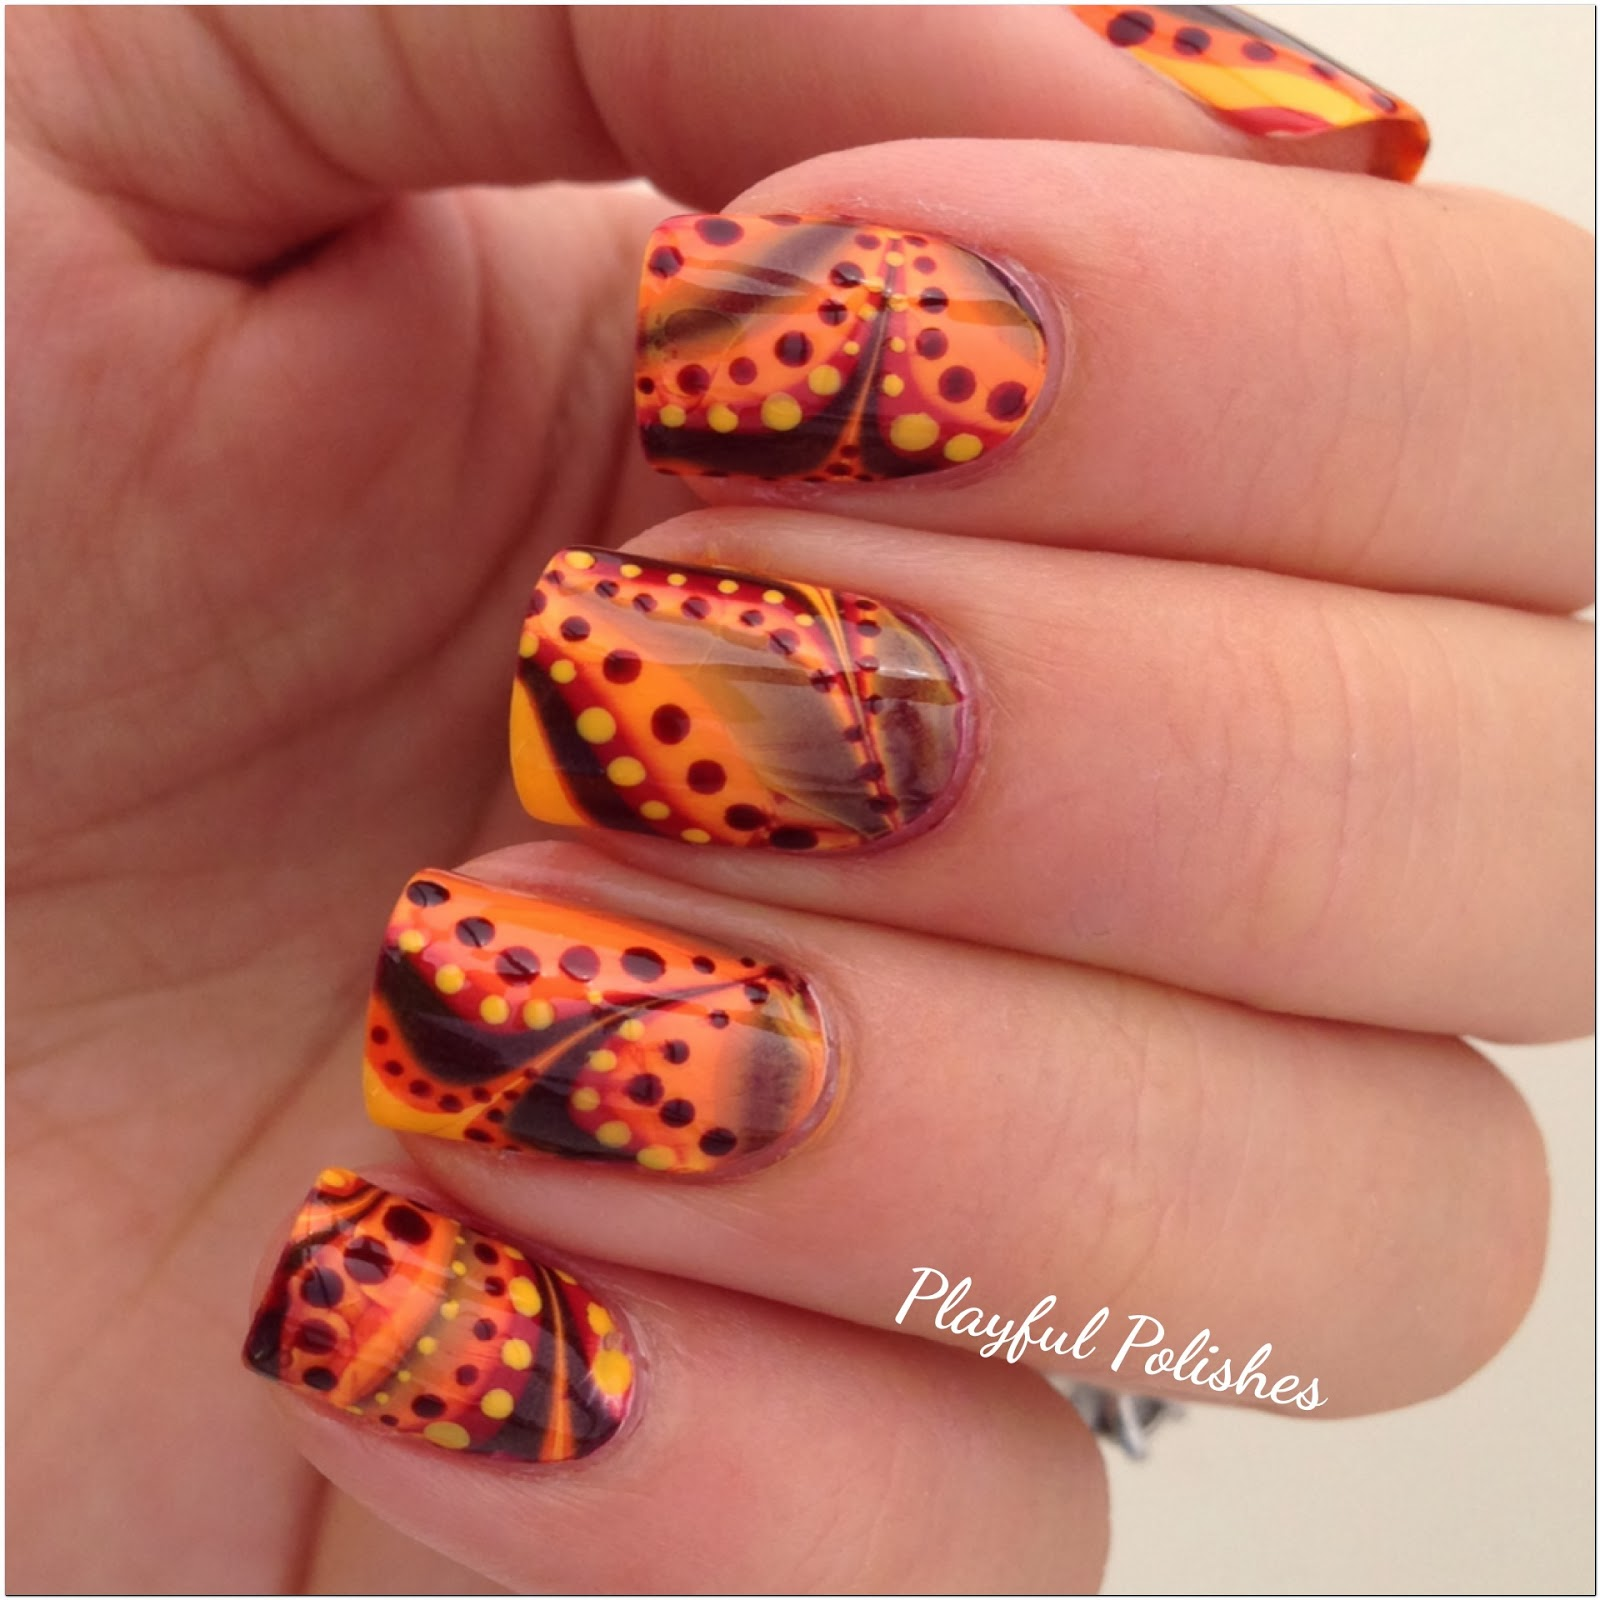 Playful Polishes: 31 DAY NAIL ART CHALLENGE: WATER MARBLE